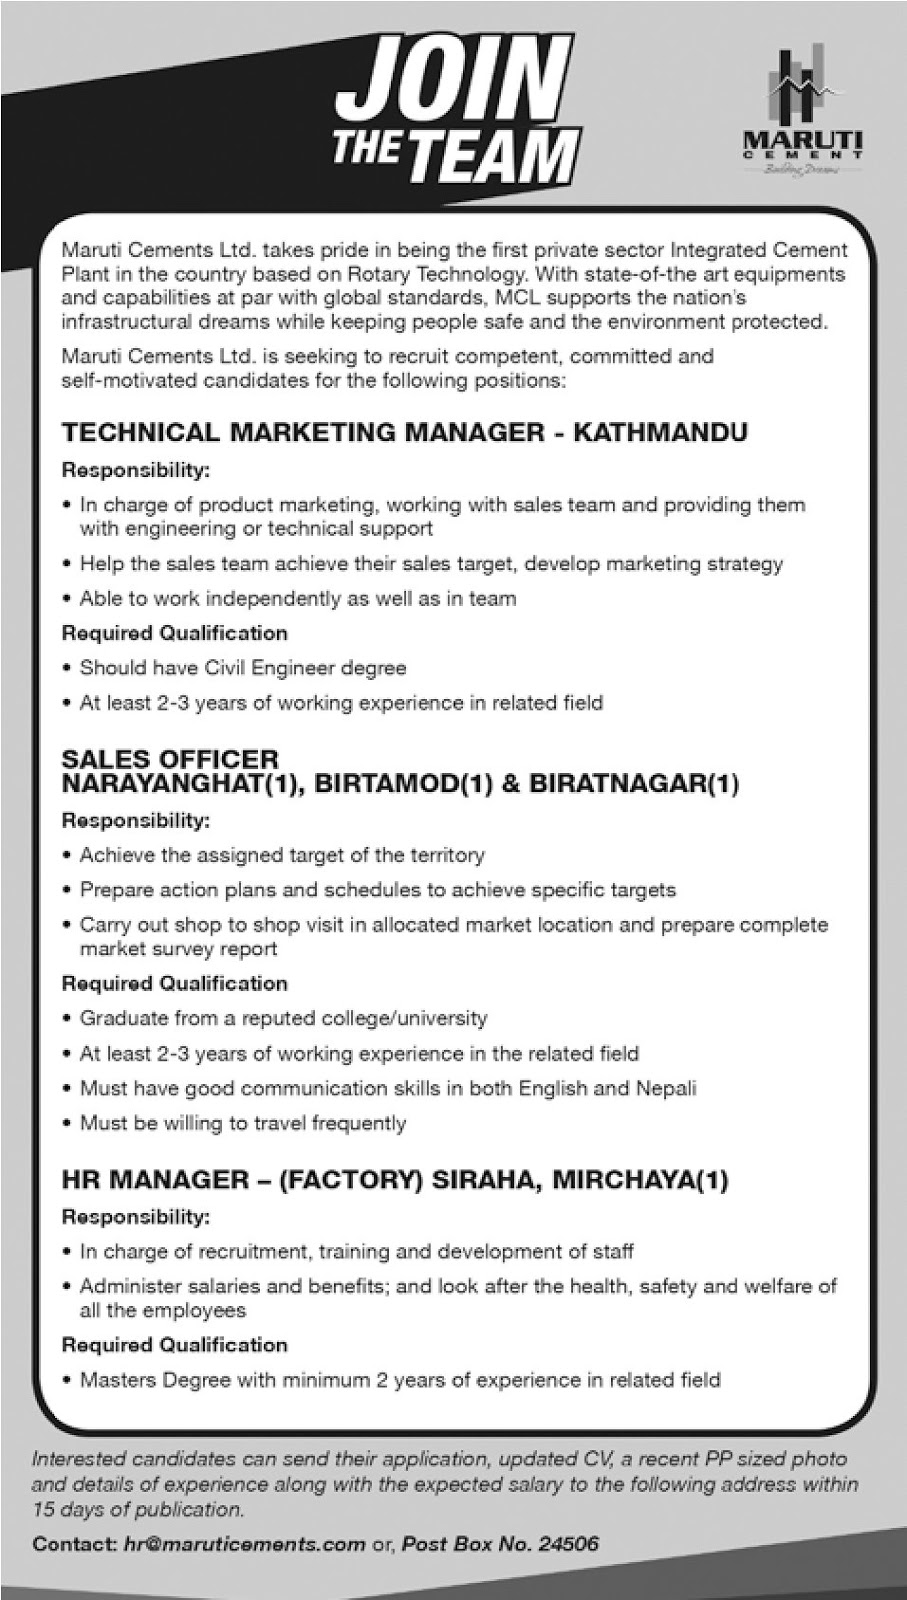 civil engineer job vacancy maruti cements engineerको घर send application updated cv a recent pp sized photo and details of experience along the expected salary to hr maruticements com or post box no